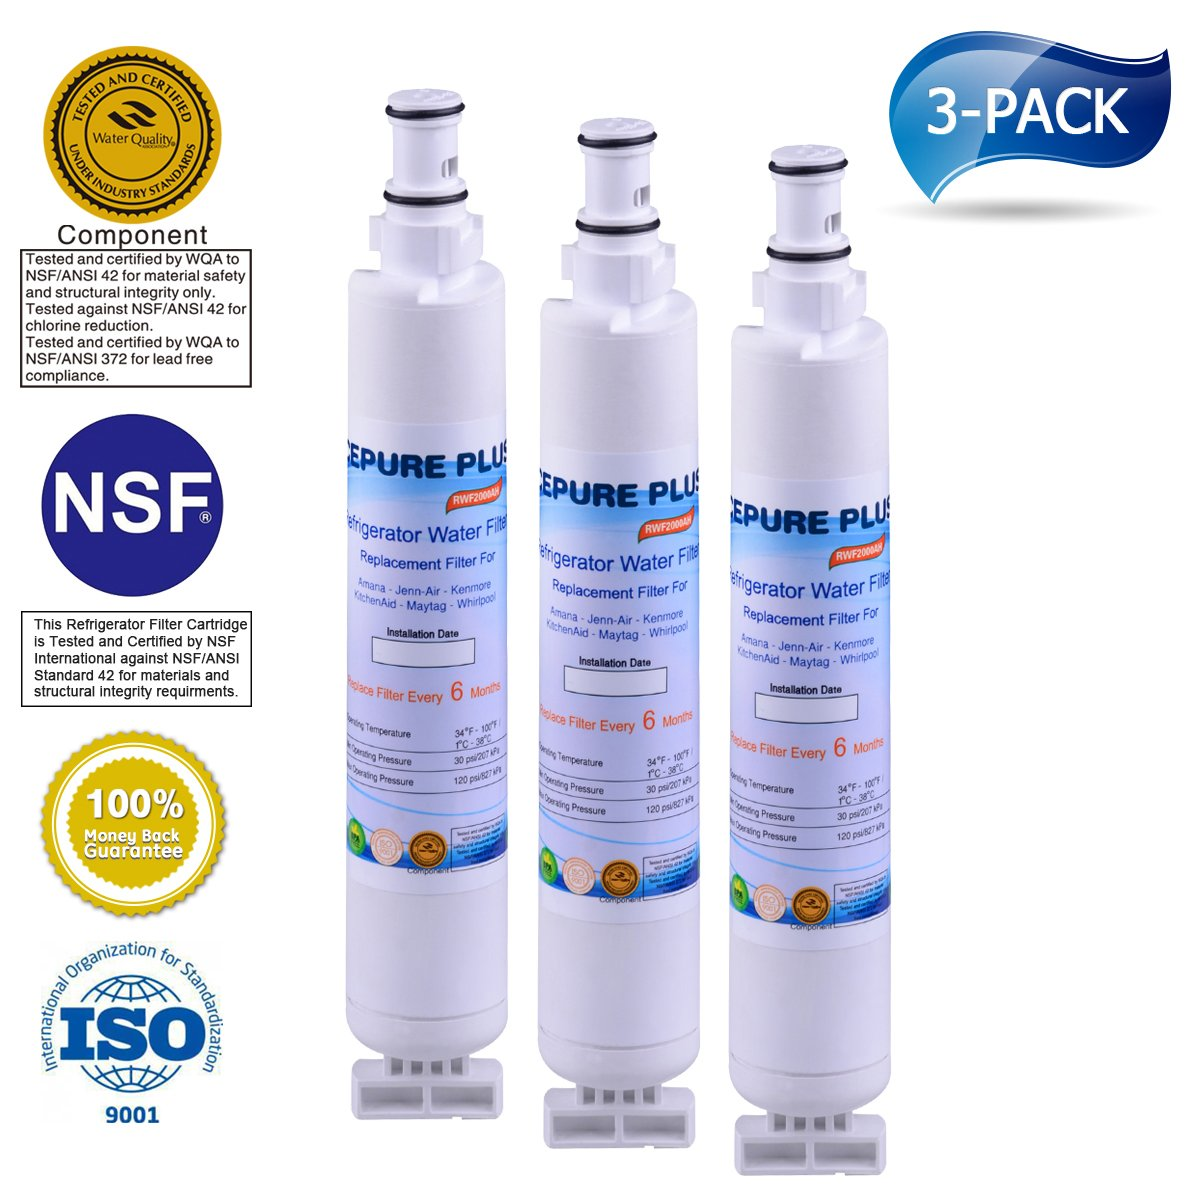 ICEPURE PLUS 4396701 Replacement for Whirlpool 4396701,EDR6D1,Kenmore 9915,46-9915,NL120V,4396701,4396702 Refrigerator Water Filter 3 Pack